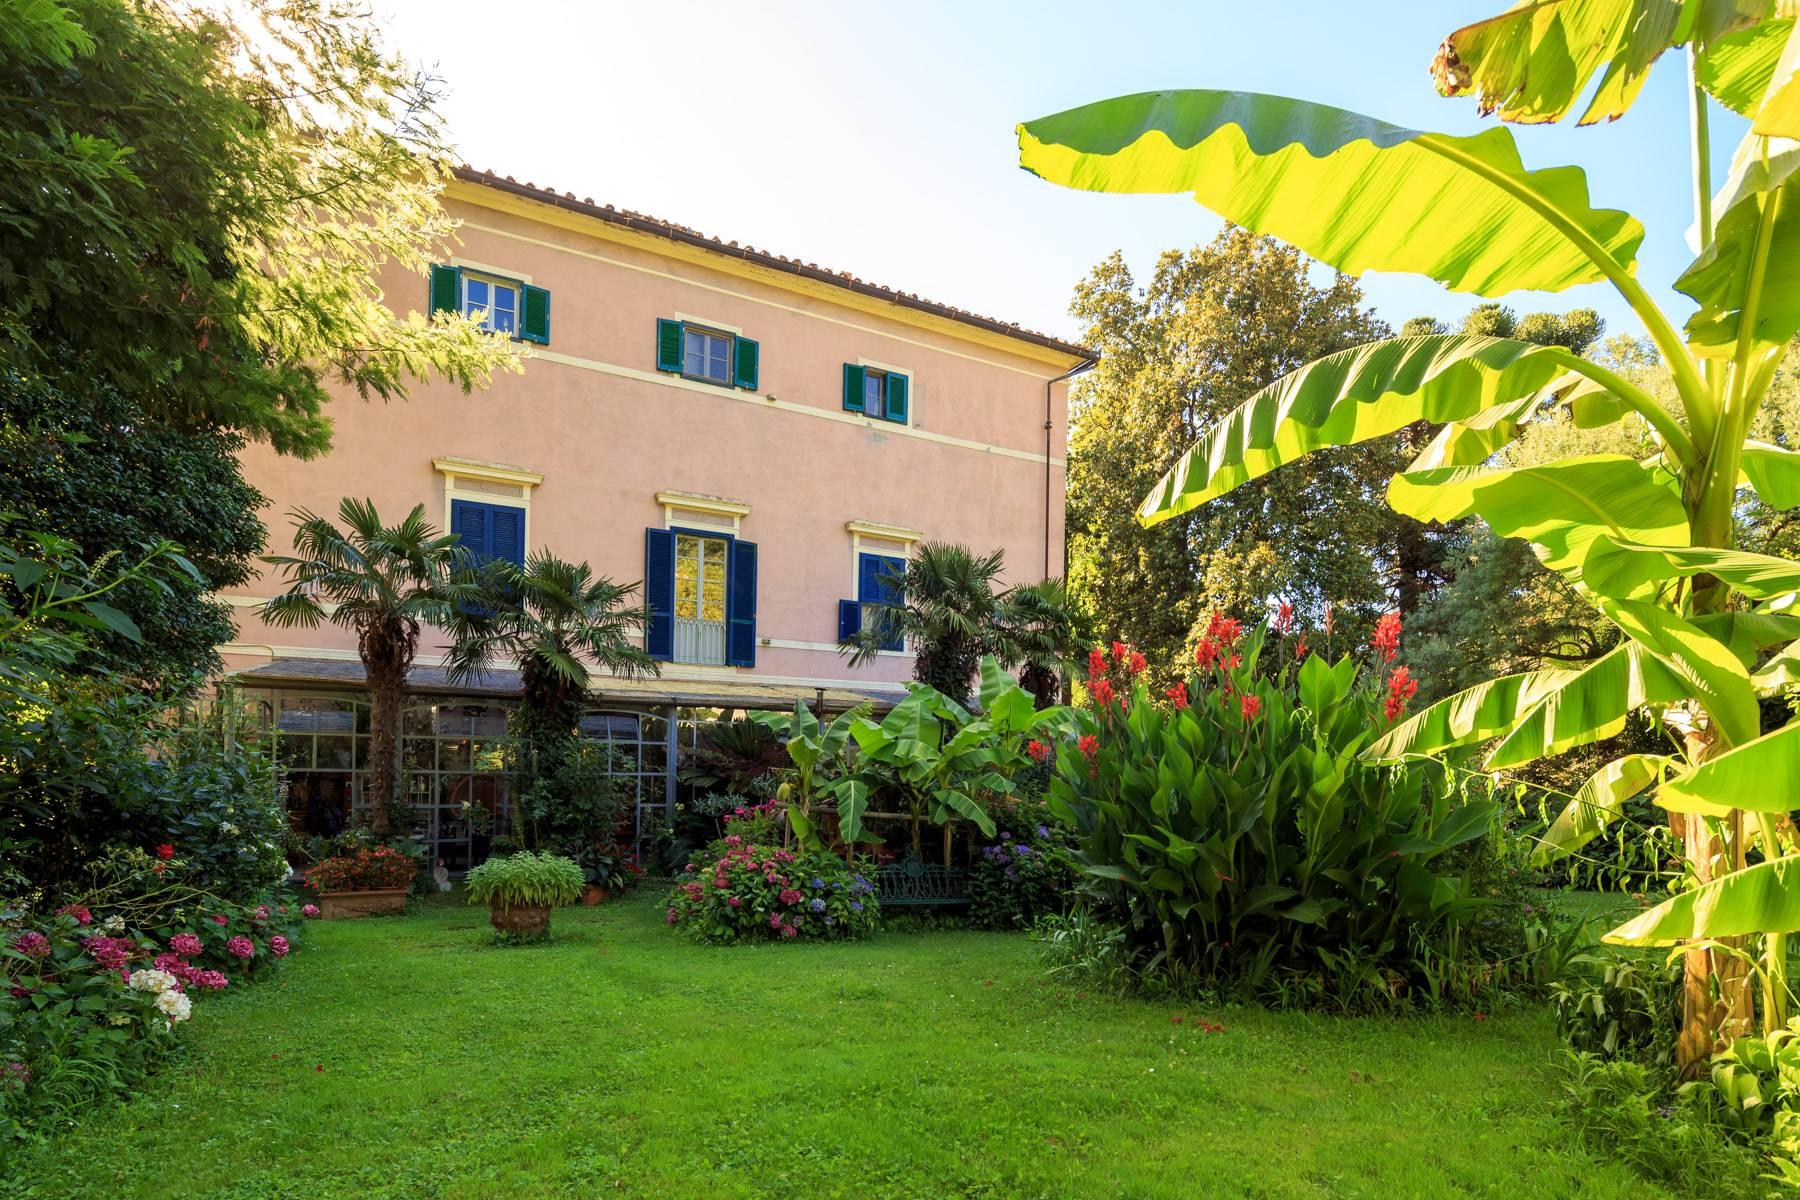 Romantic villa for sale in Pisa - 3